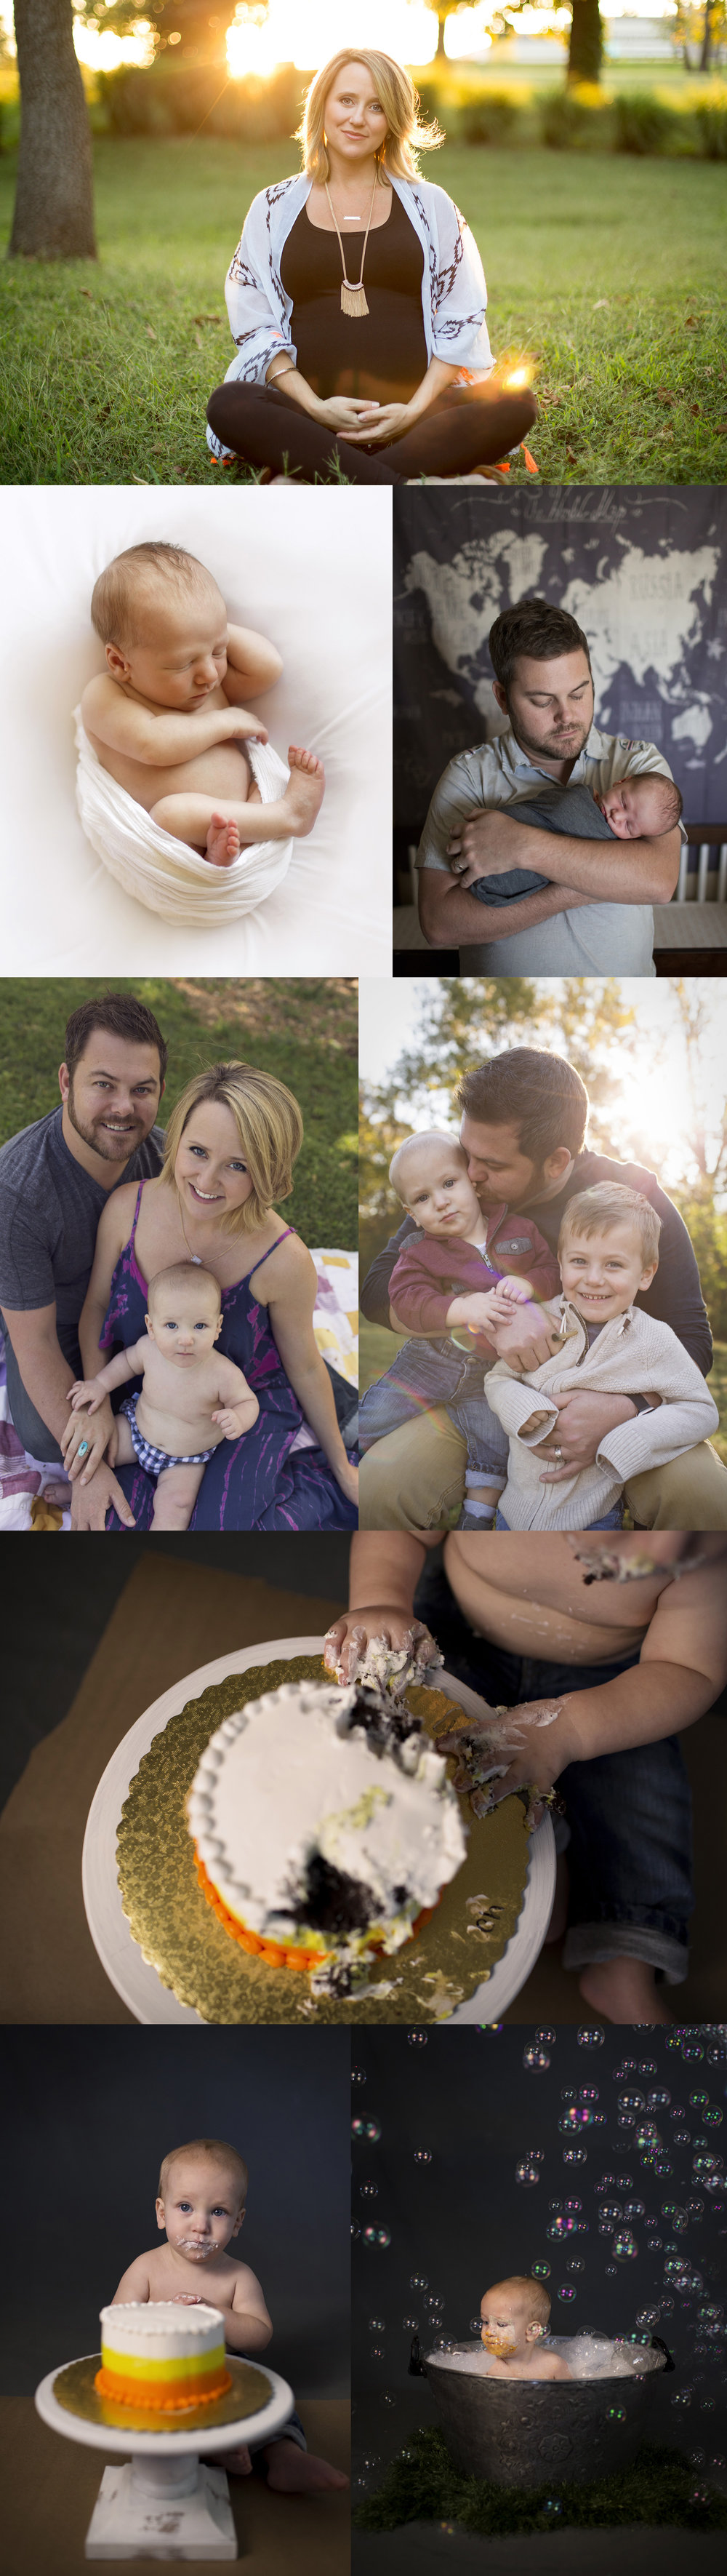 rogers-bentonville-northwest-arkansas-cake-smash-bubble-bath-first-birthday-milestone-session-sunny-skaggs-photography.jpg